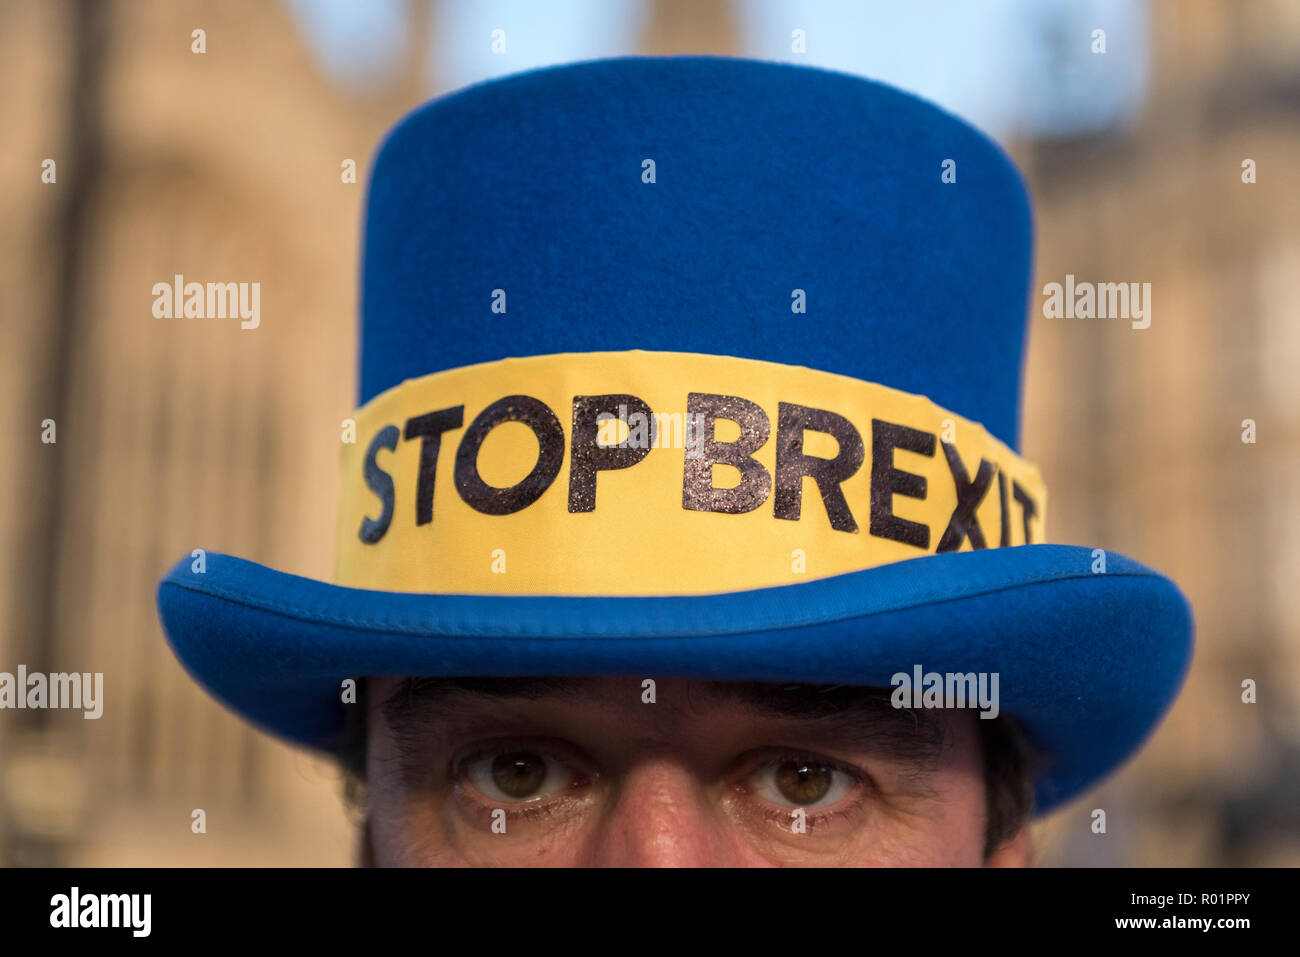 London, UK.  31 October 2018.  Steve Bray, leader of Stand of Defiance European Movement (SODEM), stands outside Parliament as the group continues their anti-Brexit campaign which began in September 2017. Credit: Stephen Chung / Alamy Live News - Stock Image